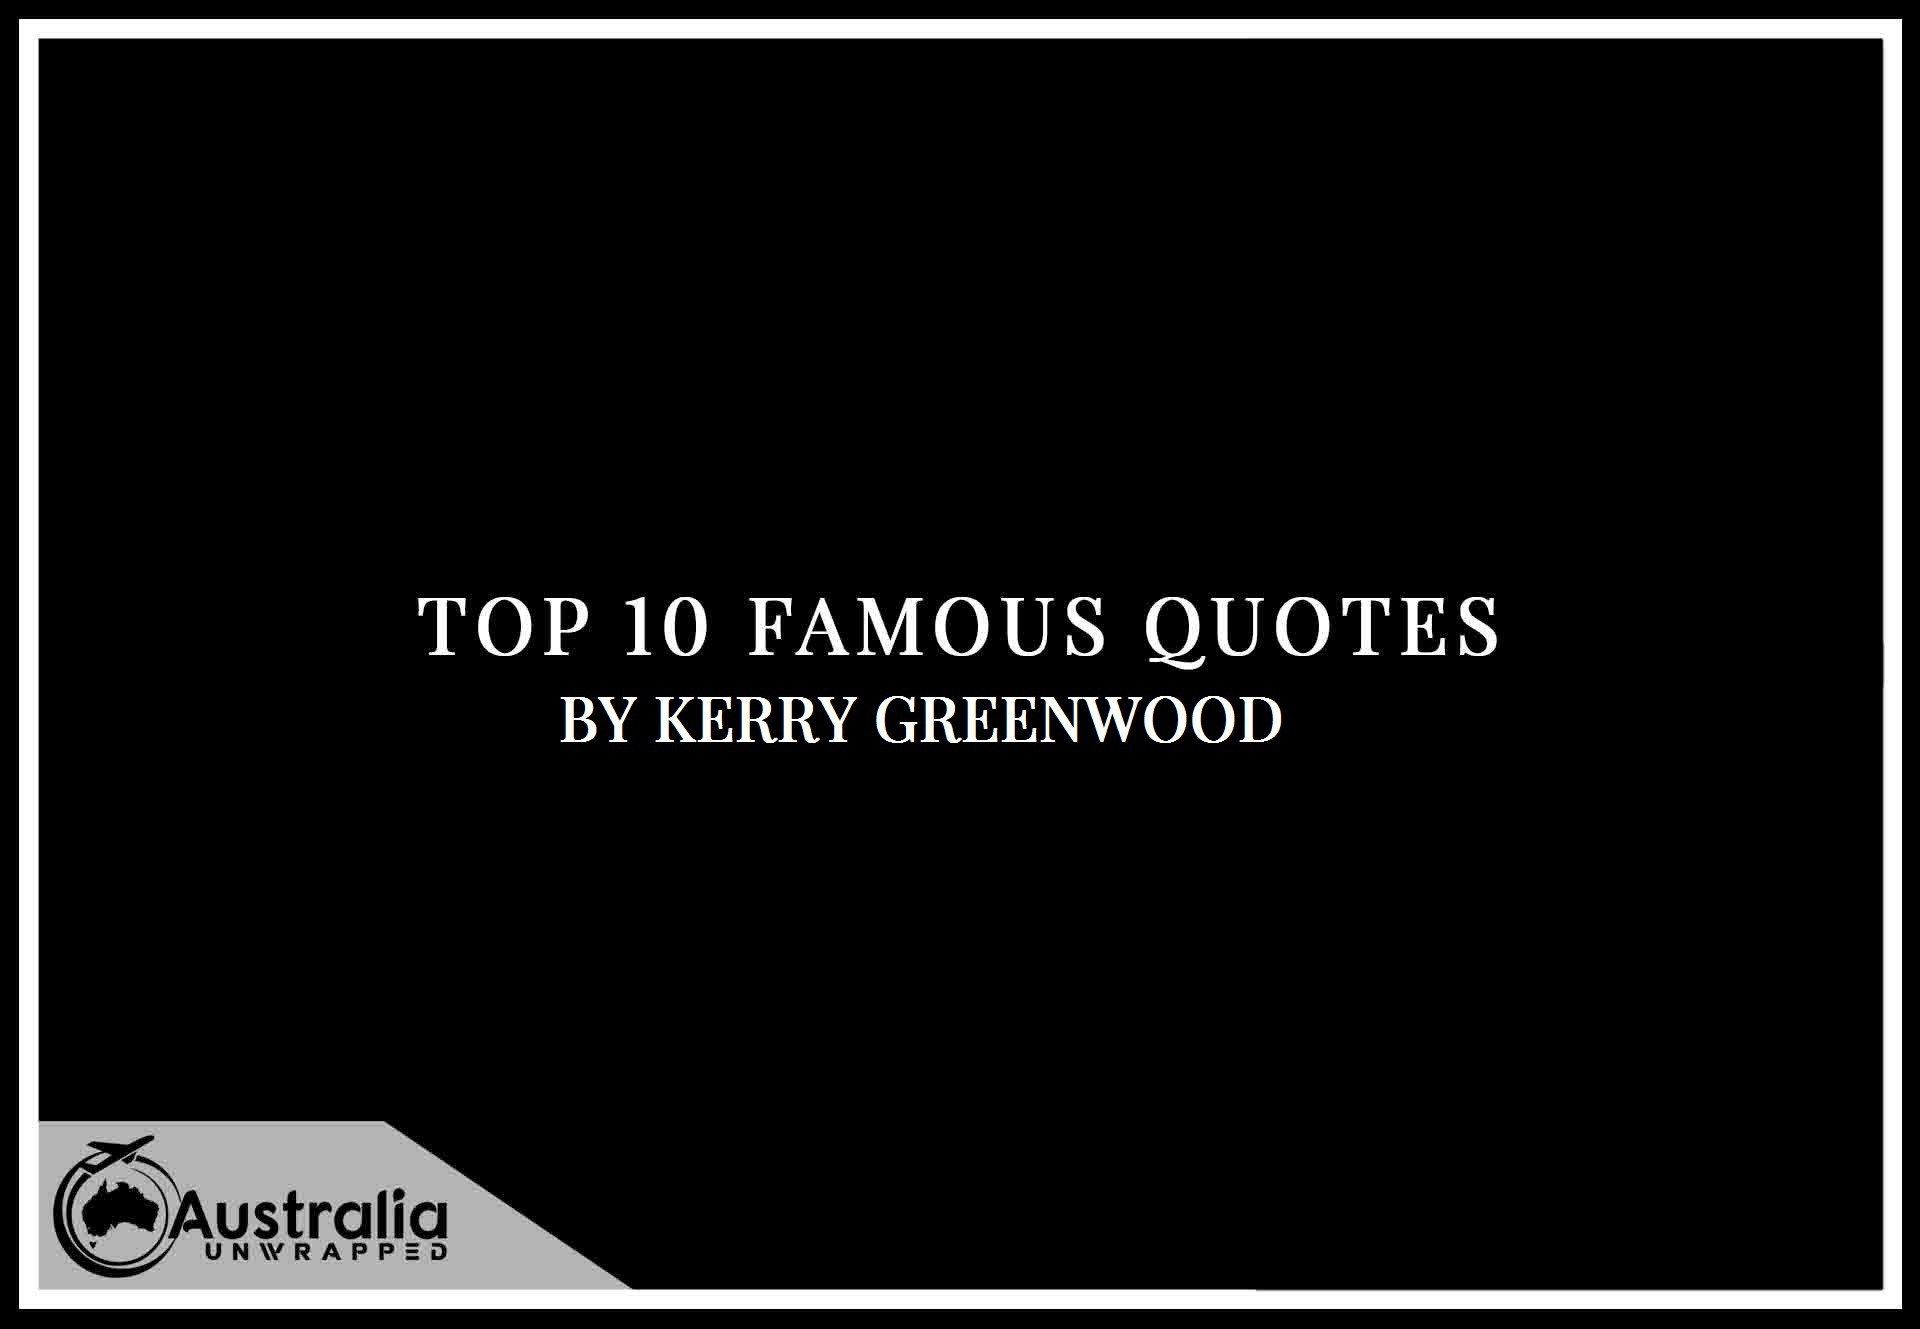 Kerry Greenwood's Top 10 Popular and Famous Quotes